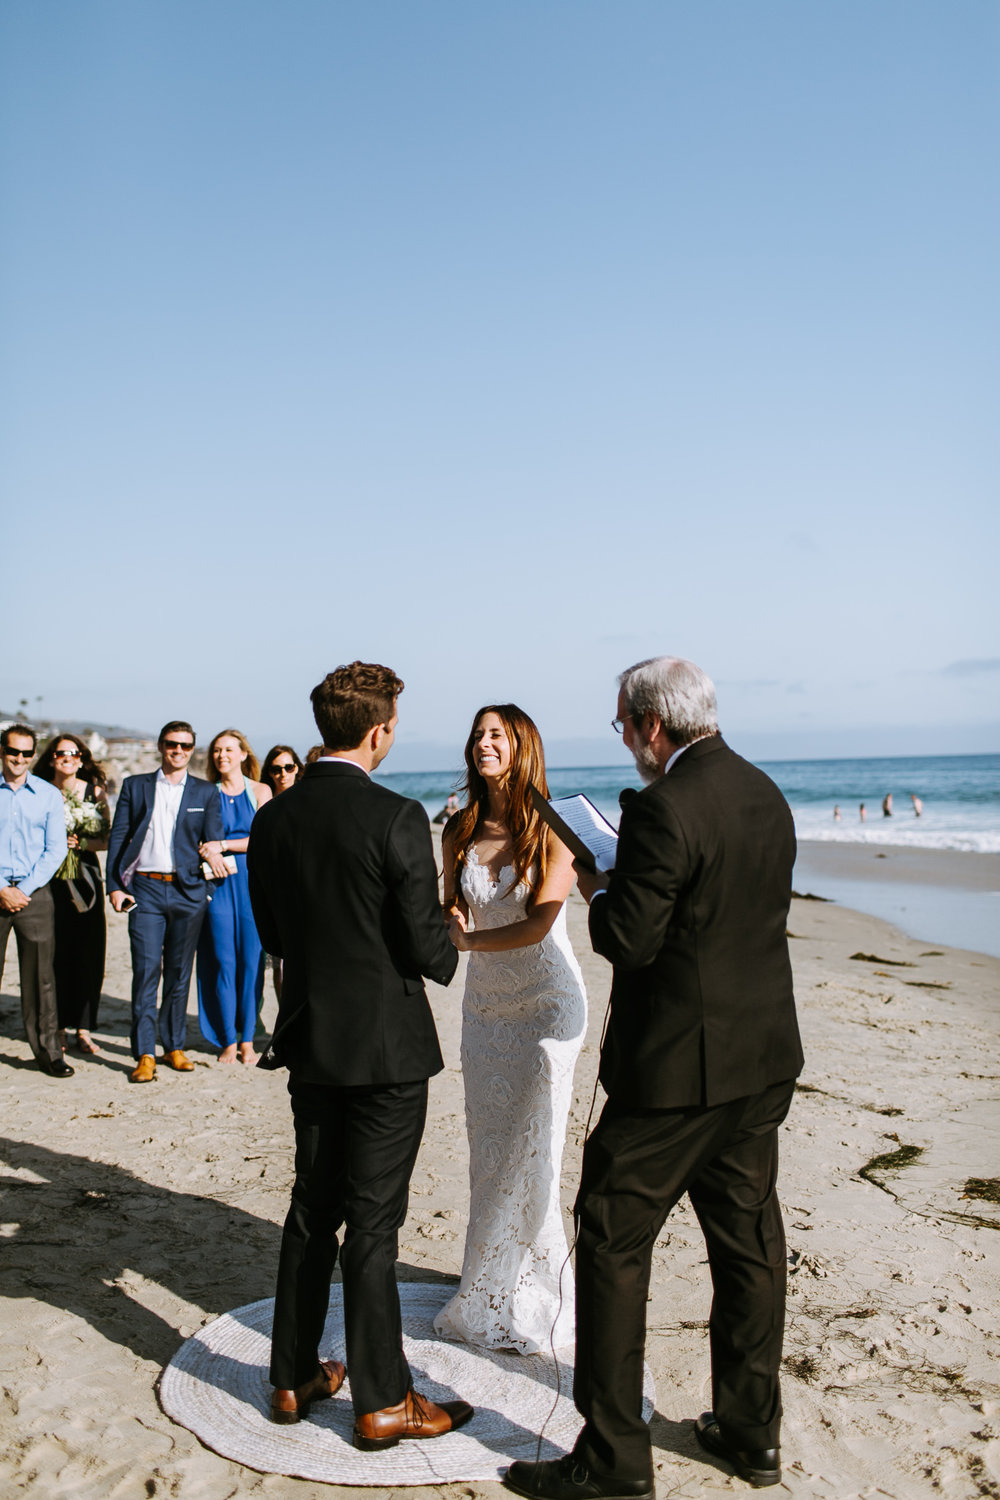 LagunaBeach-WeddingPhotographer-34.jpg